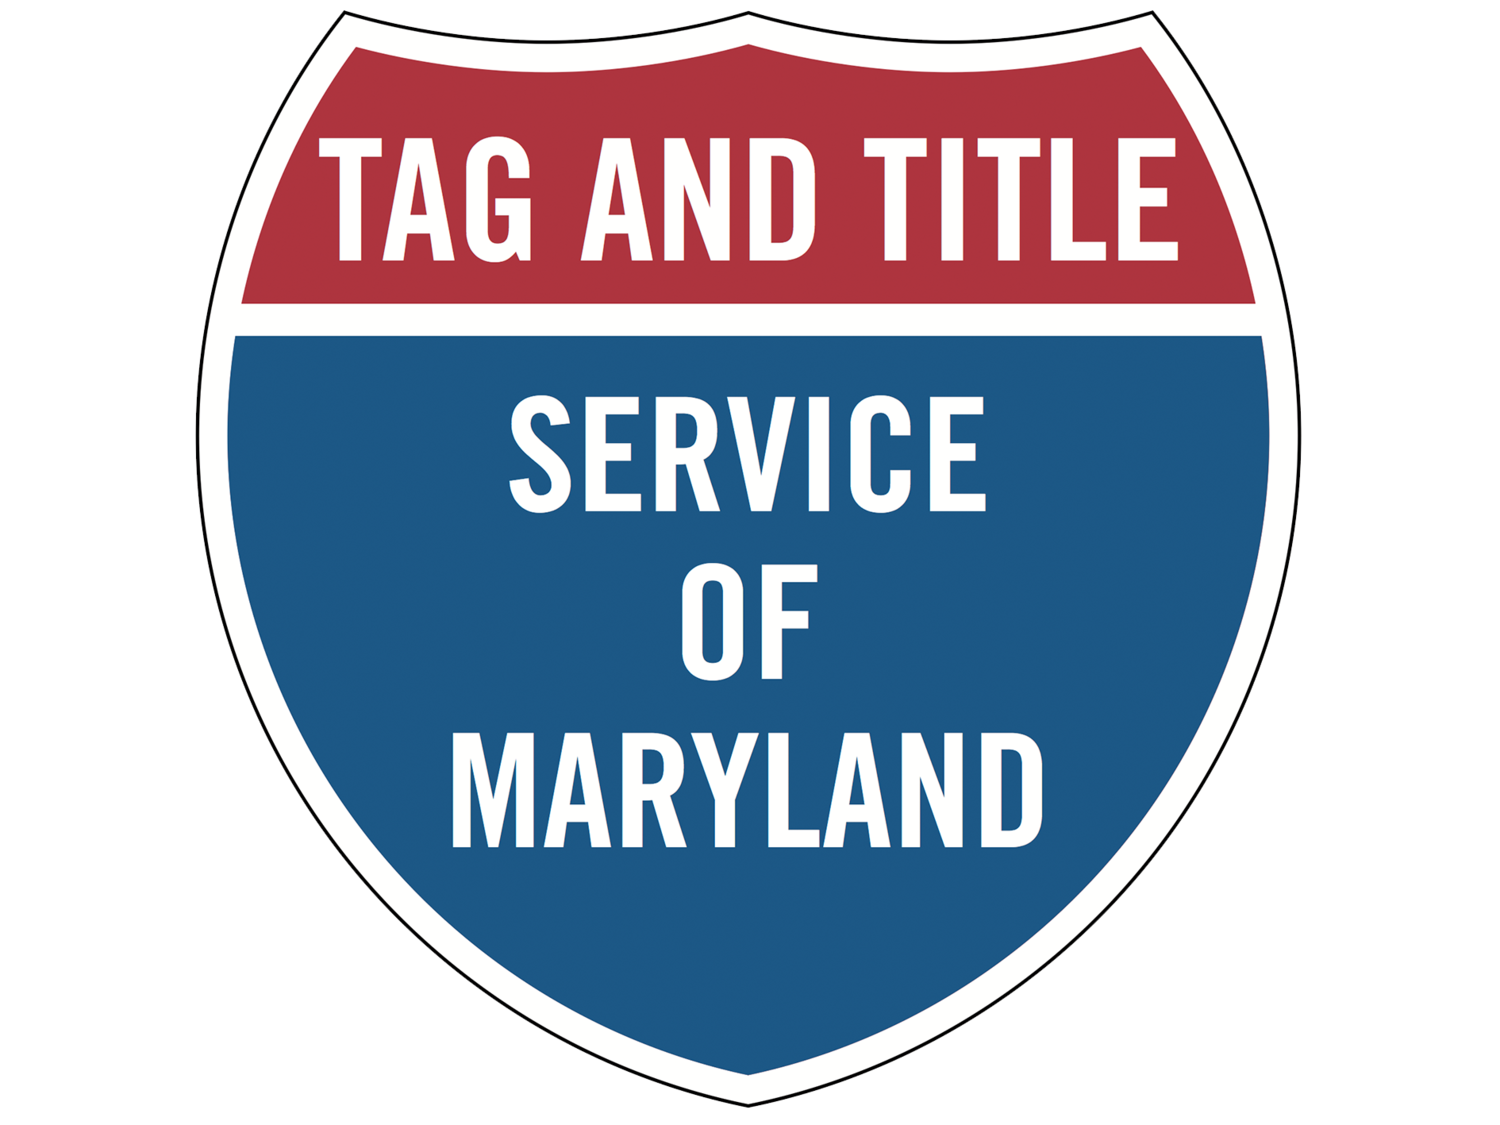 & Title Service of Maryland